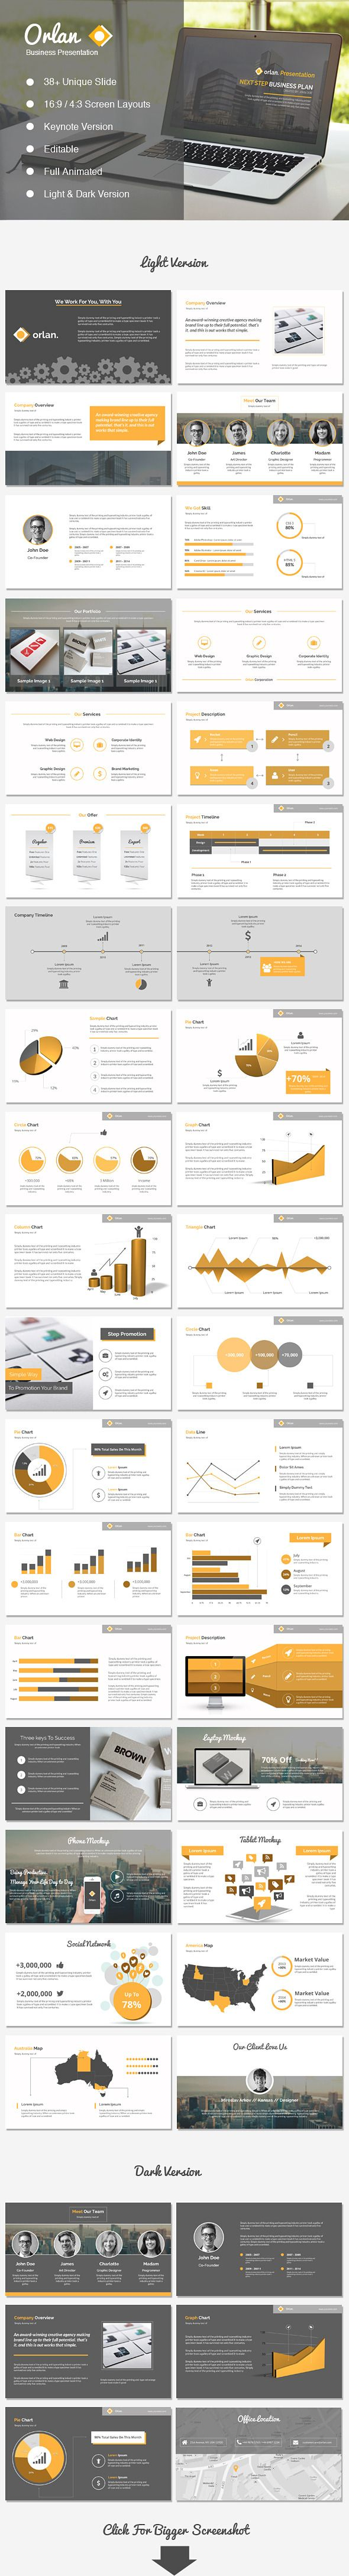 Orlan Keynote Business Presentation | #keynote #keynotetemplate #keynotepresentation | Download: http://graphicriver.net/item/orlan-keynote-business-presentation-/8545775?ref=ksioks